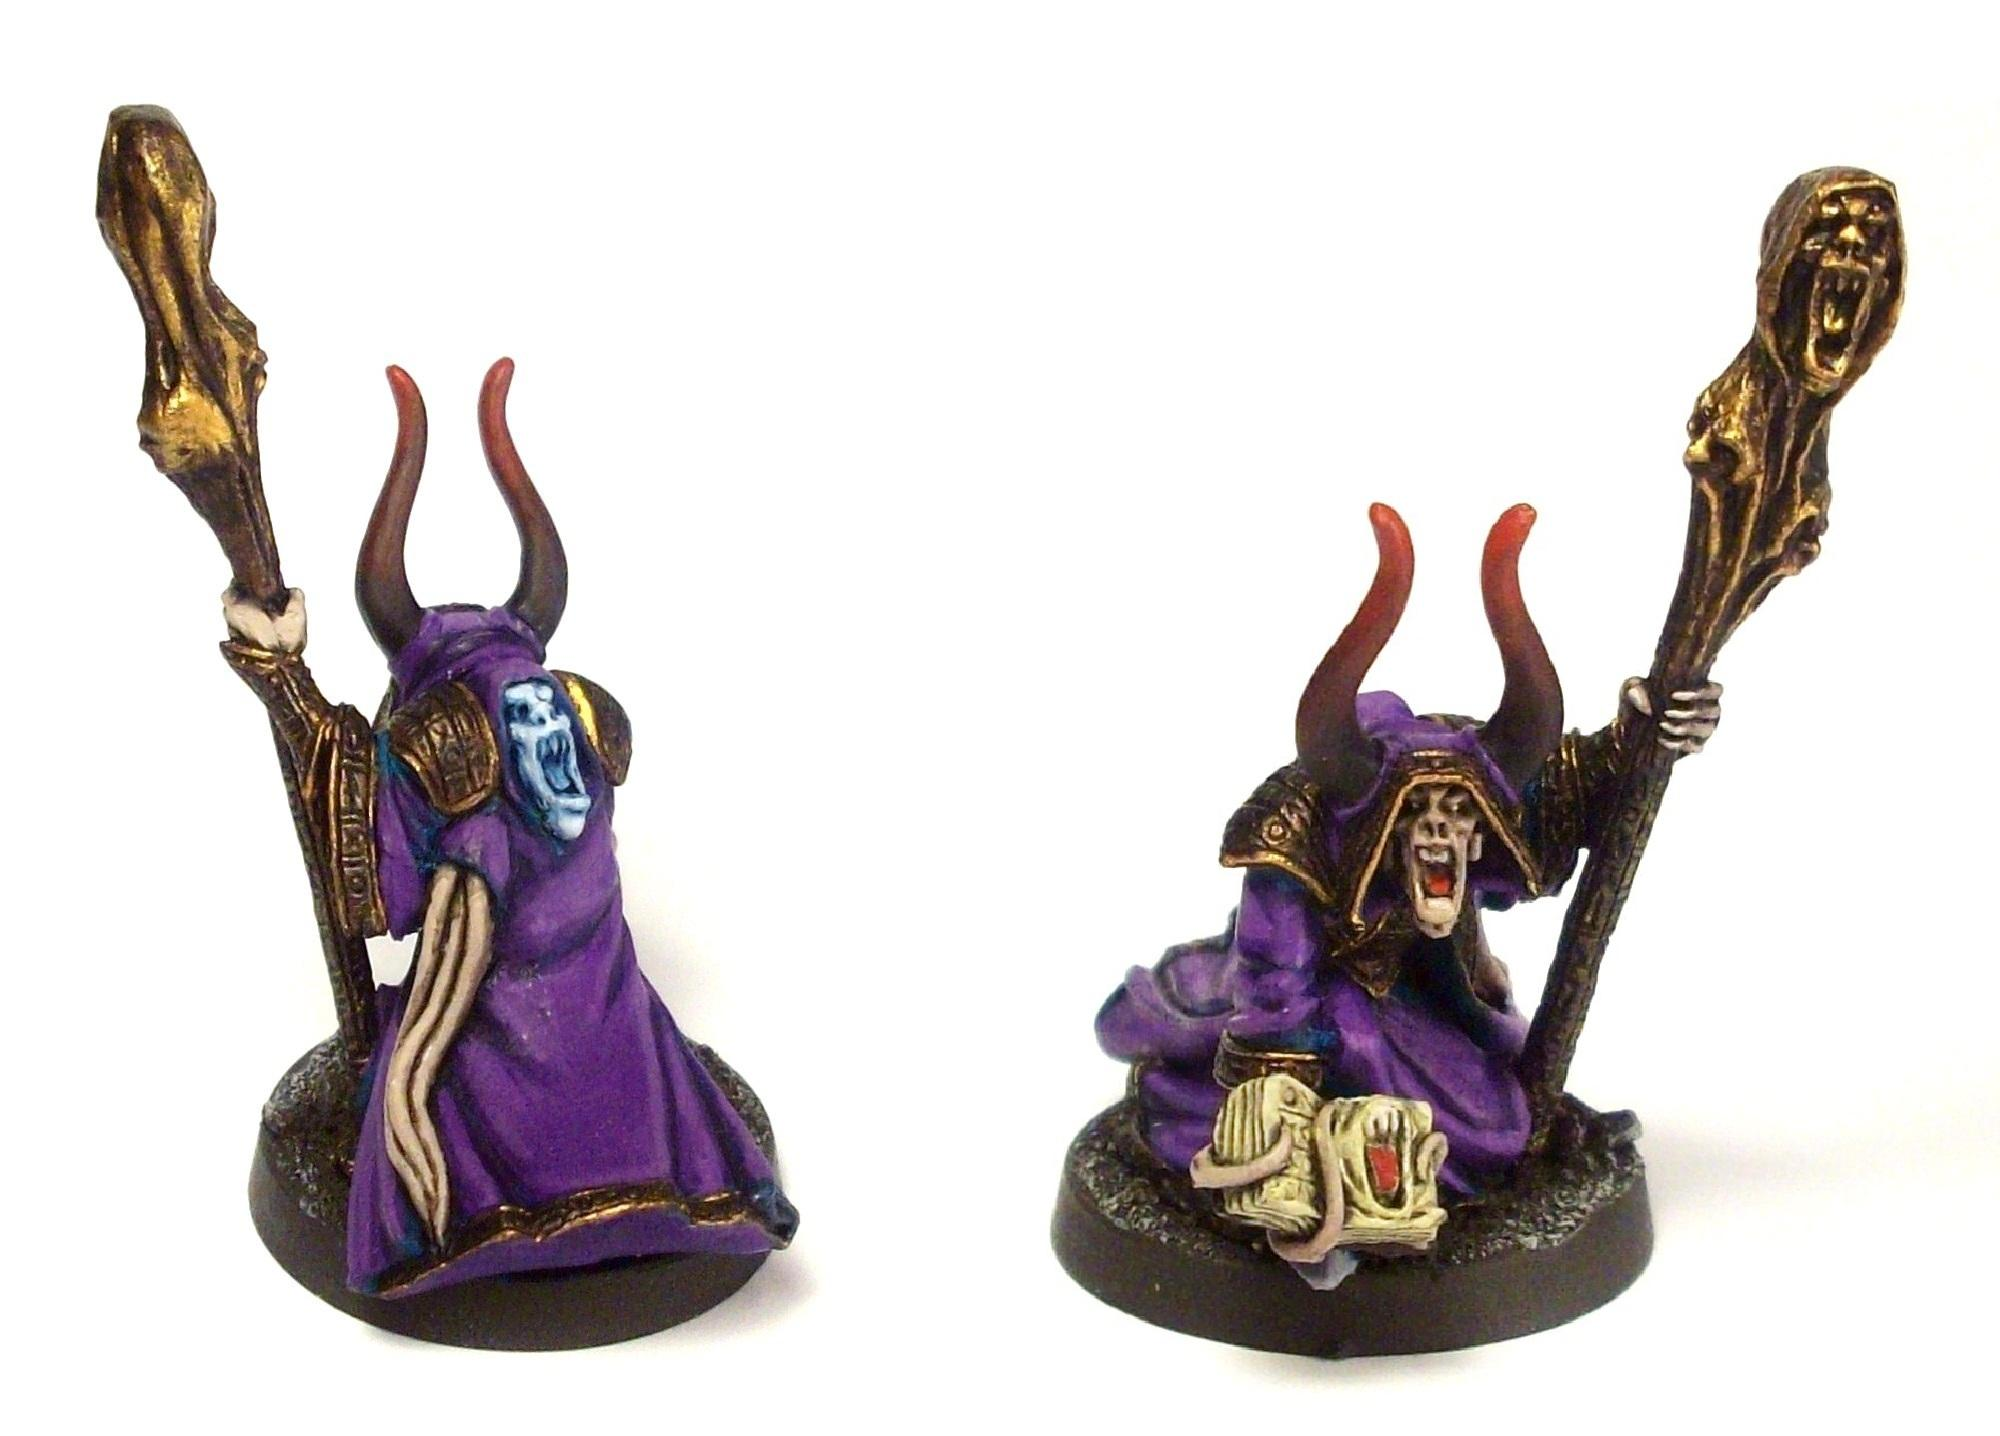 Chaos, Dungeon And Dragons, Dungeons And Dragons, Sorcerer, Tzeentch, Warhammer Fantasy, Warhammer Quest, Wizard